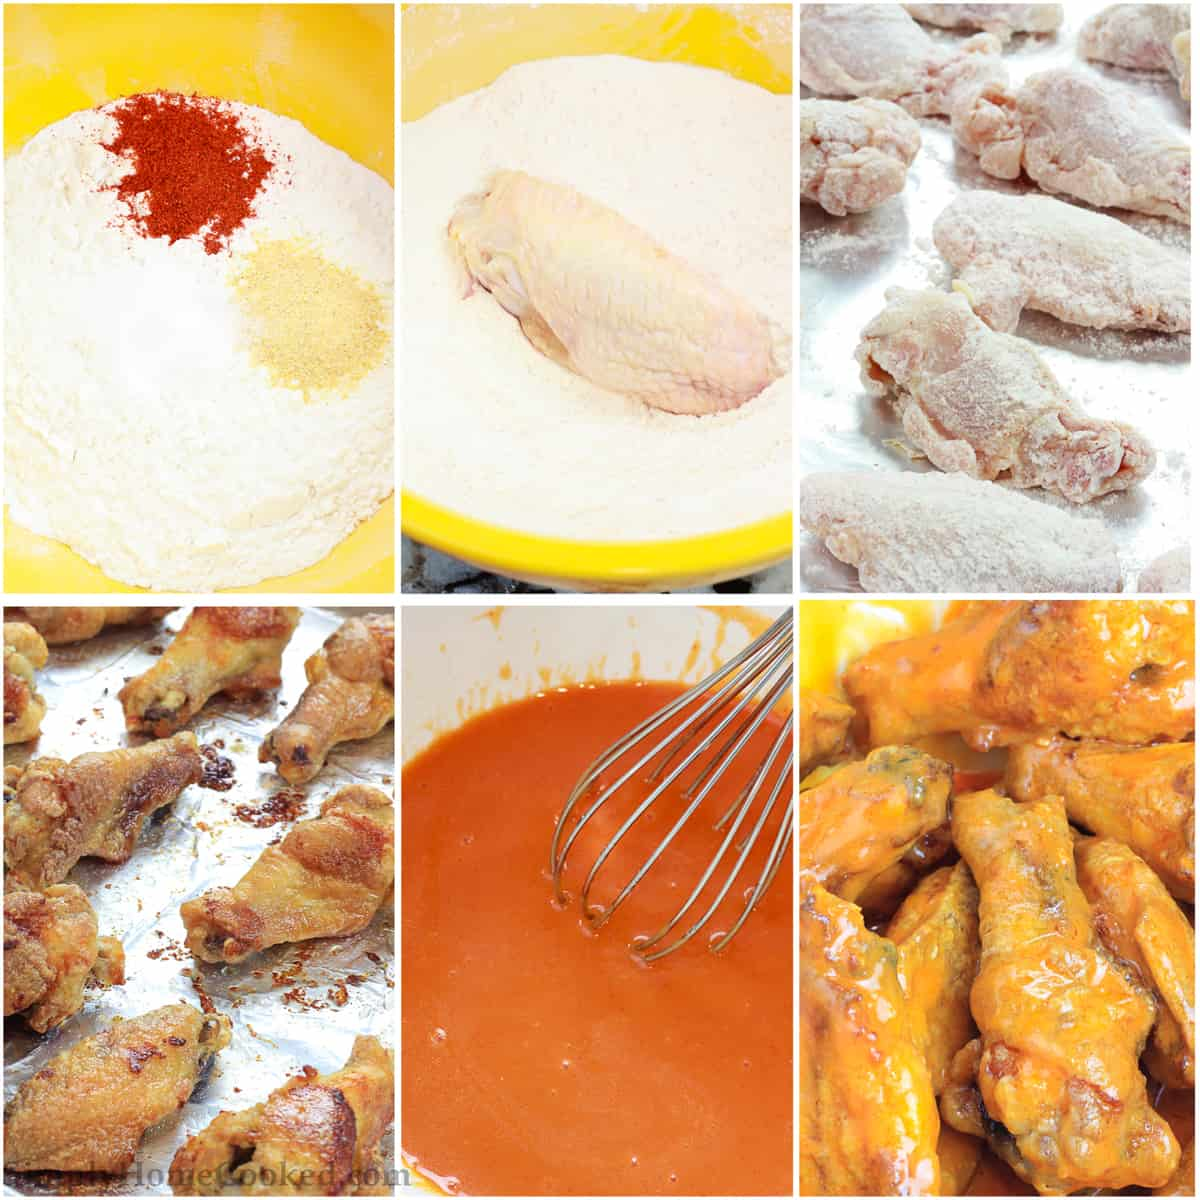 Overhead pictures in a collage showing the process of mixing the seasoned flour, dredging, and baking the baked chicken wings recipe before tossing in hot sauce mixture.